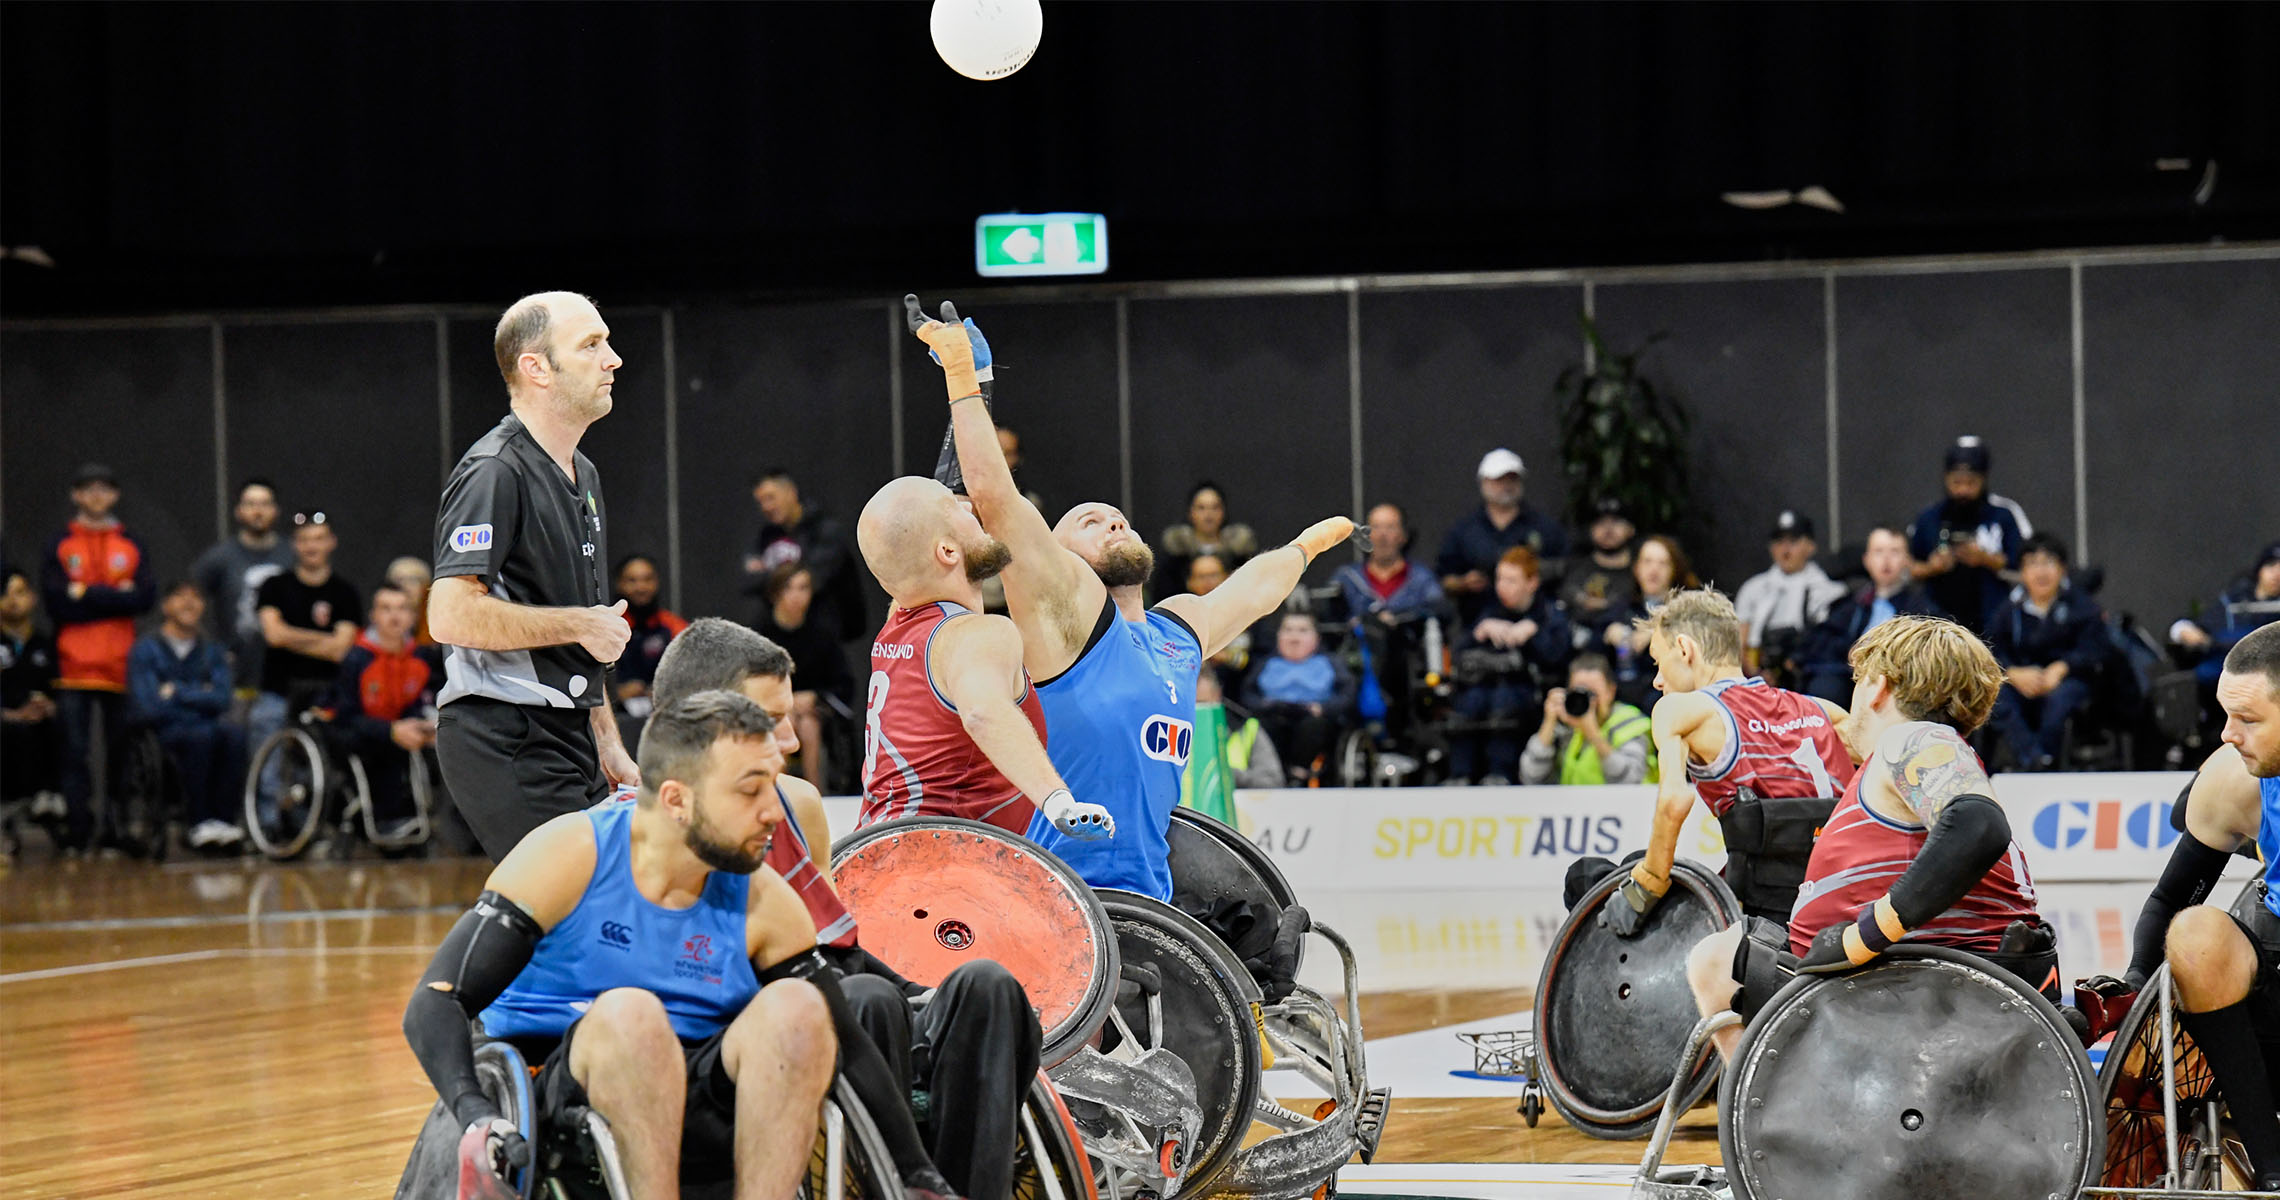 Gold Coast secures Wheelchair Rugby National Championship for the first time